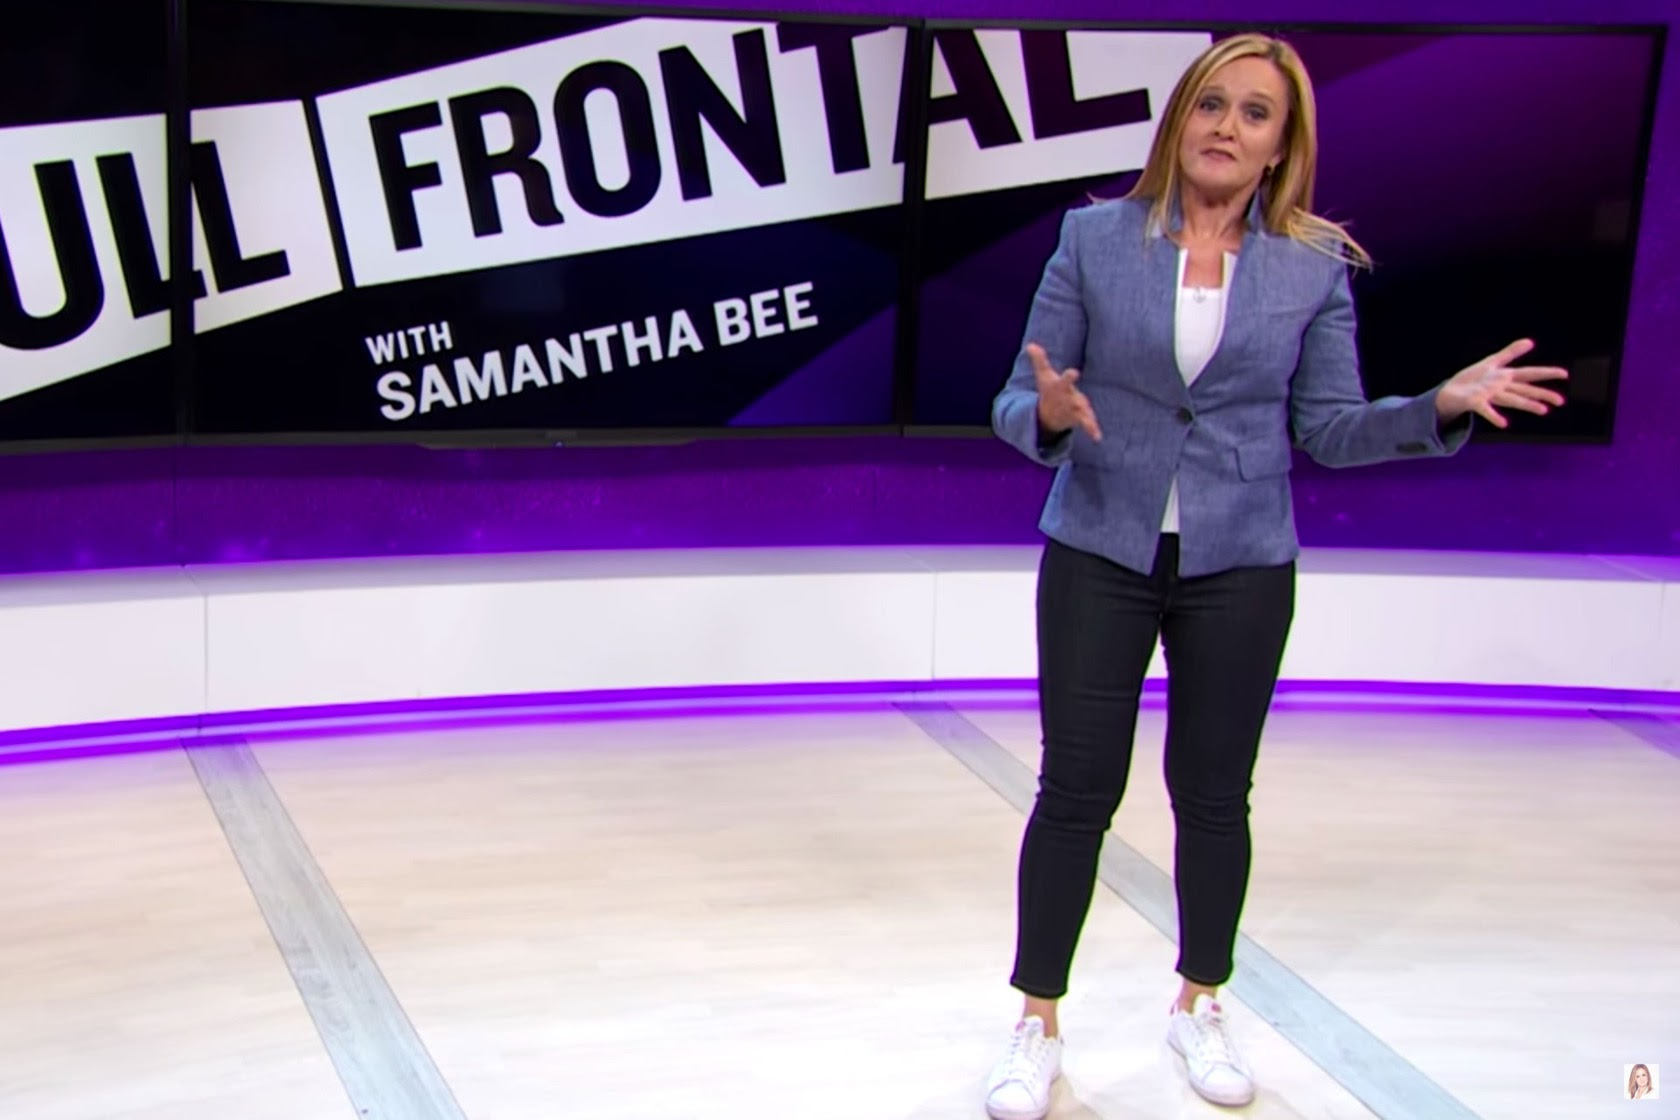 Television Academy should eject Samantha Bee for vulgarity directed at Ivanka Trump